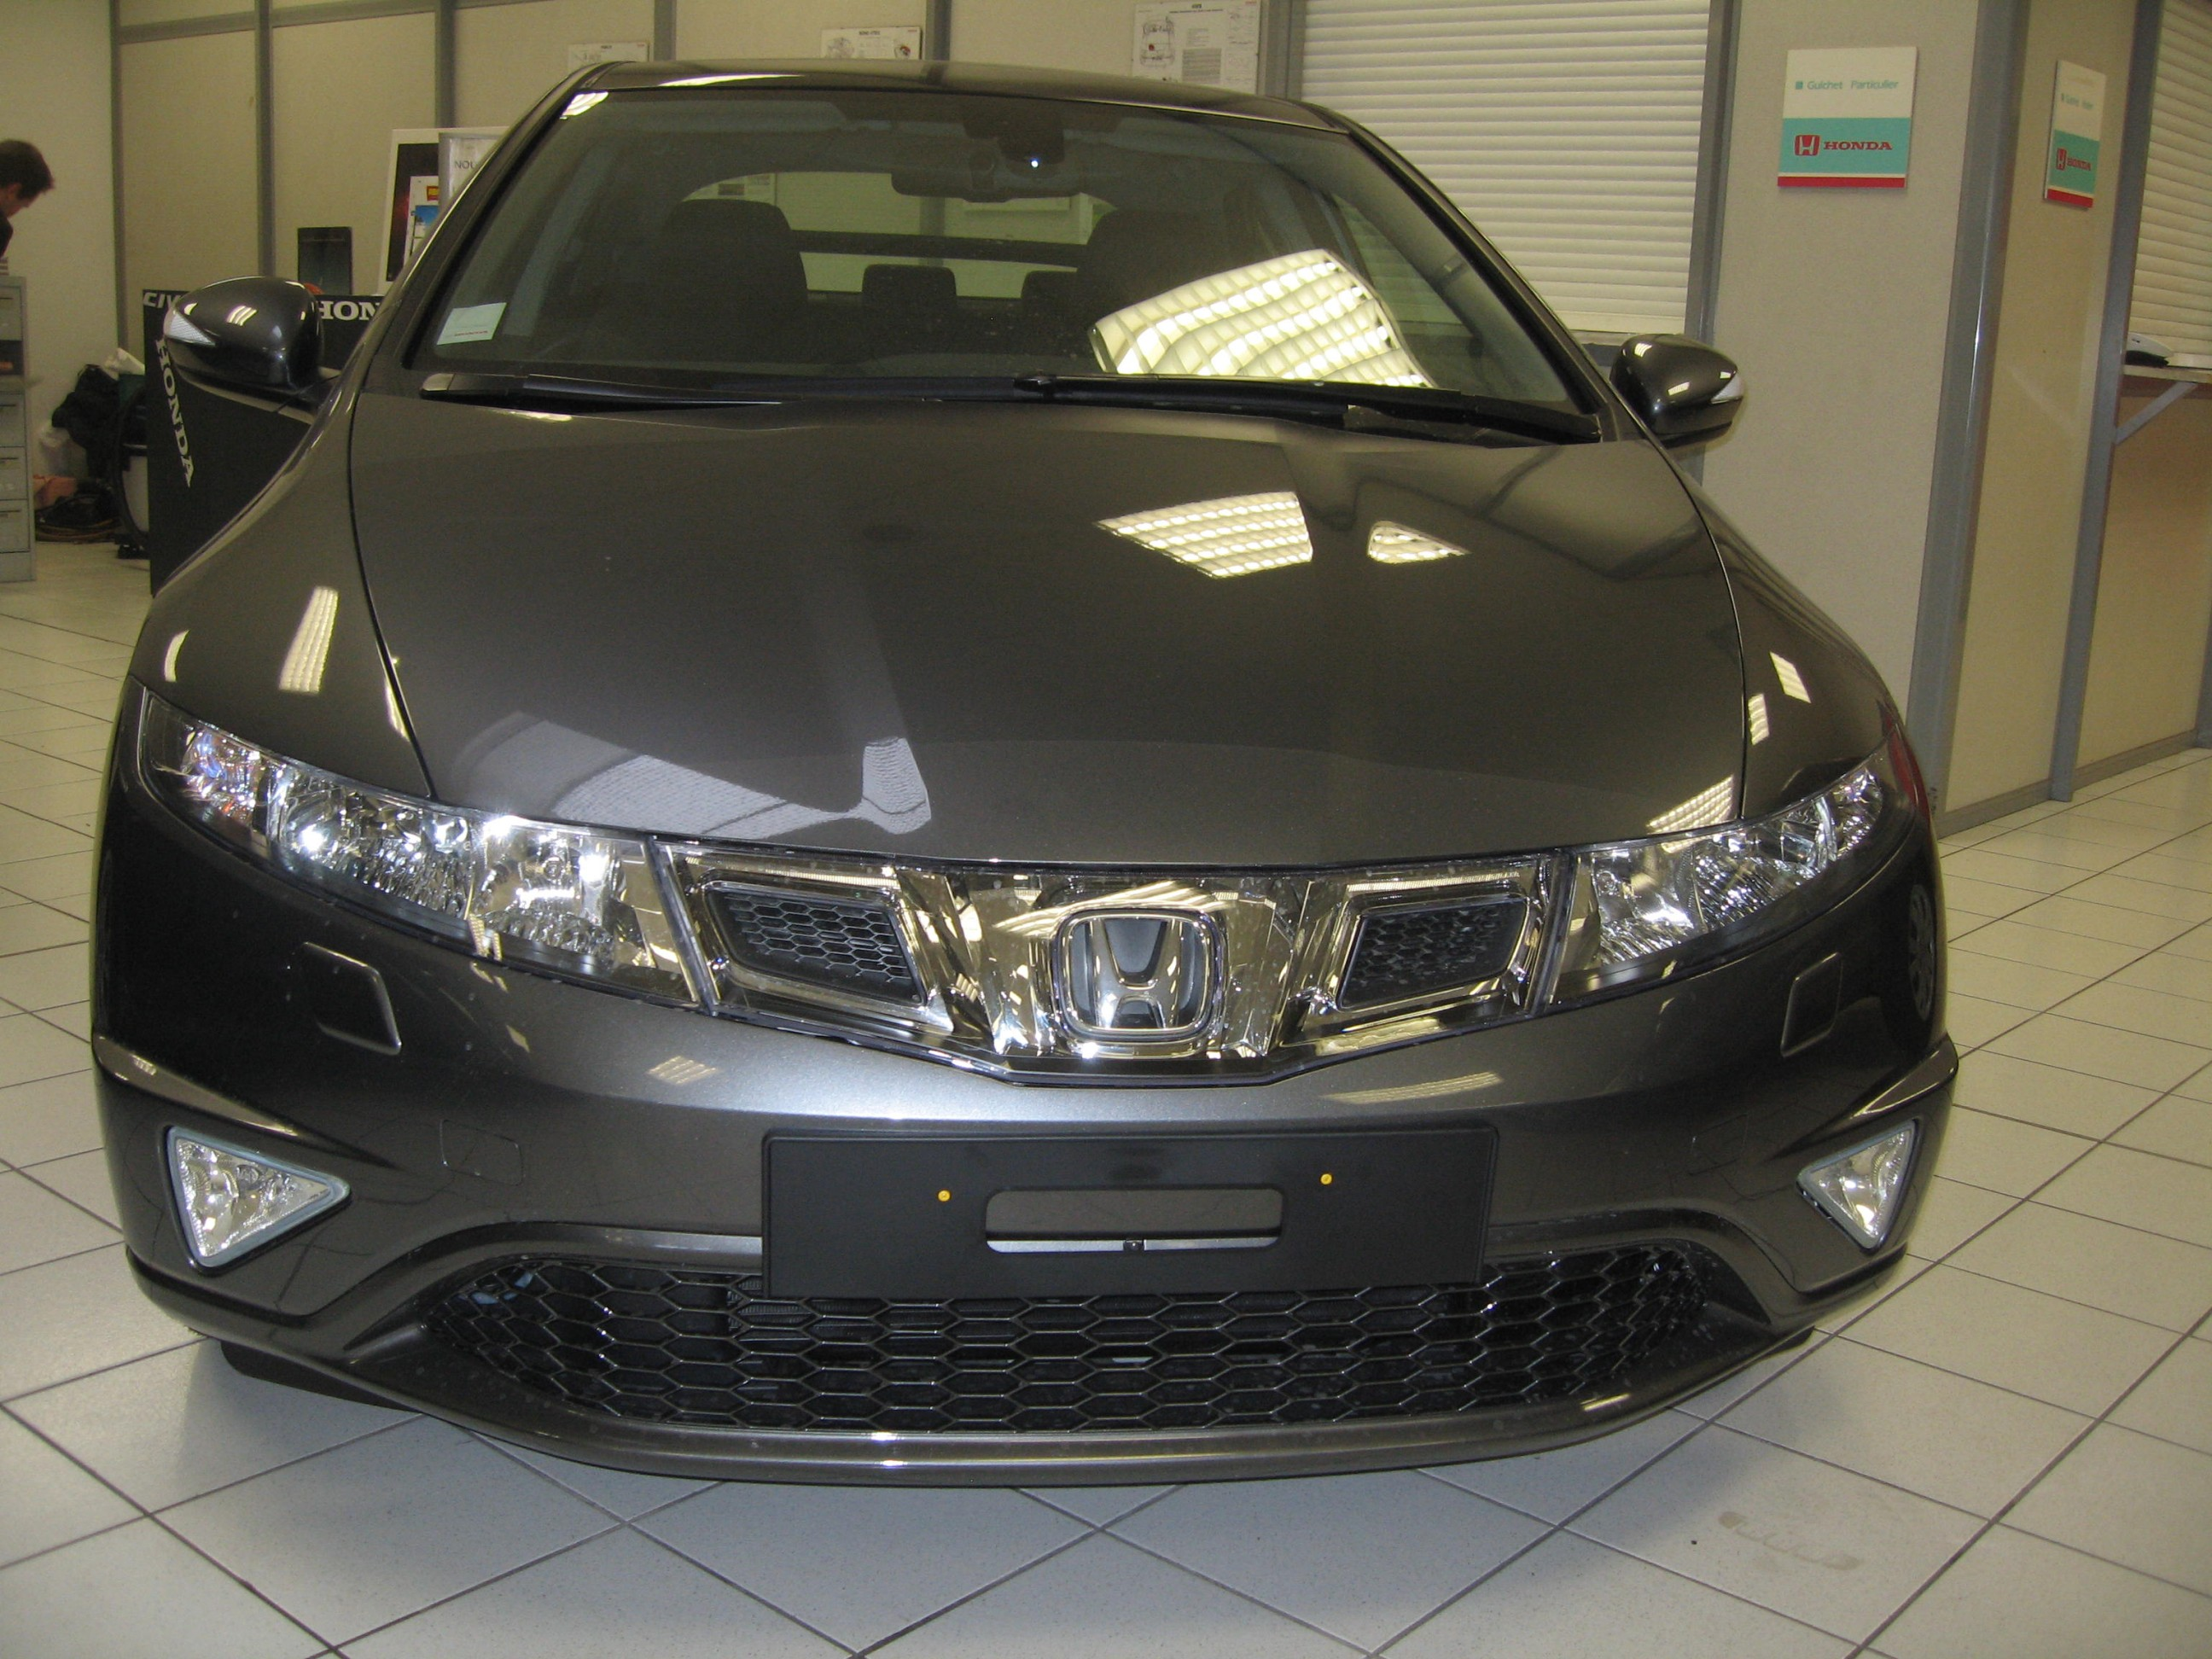 test drive rpt xpress honda civic types 3p 1 8 v tec 140ch page 3 auto titre. Black Bedroom Furniture Sets. Home Design Ideas